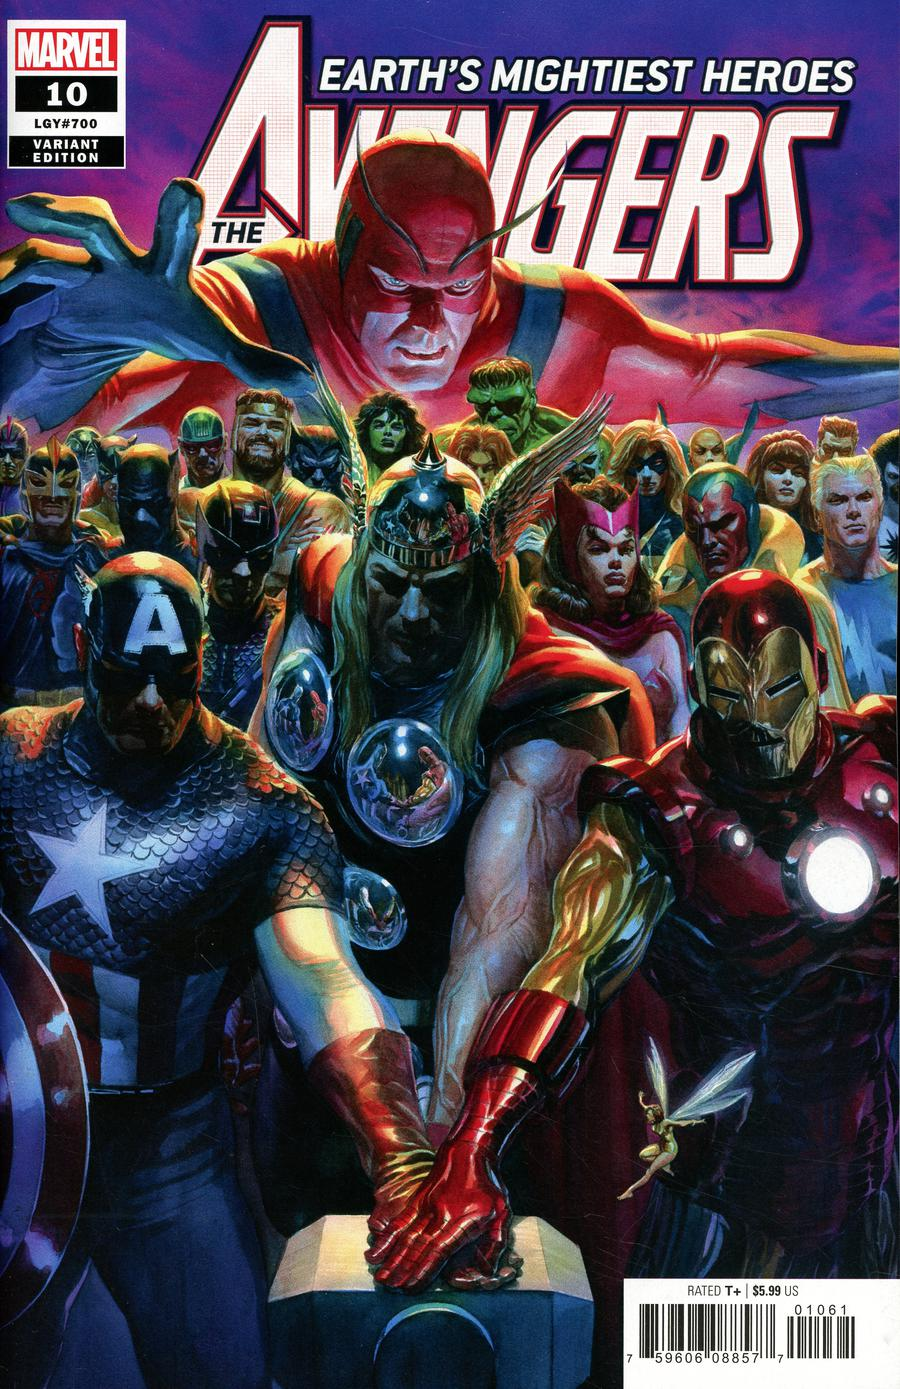 The Avengers: Earth's Mightiest Heroes #10 – CovrPrice